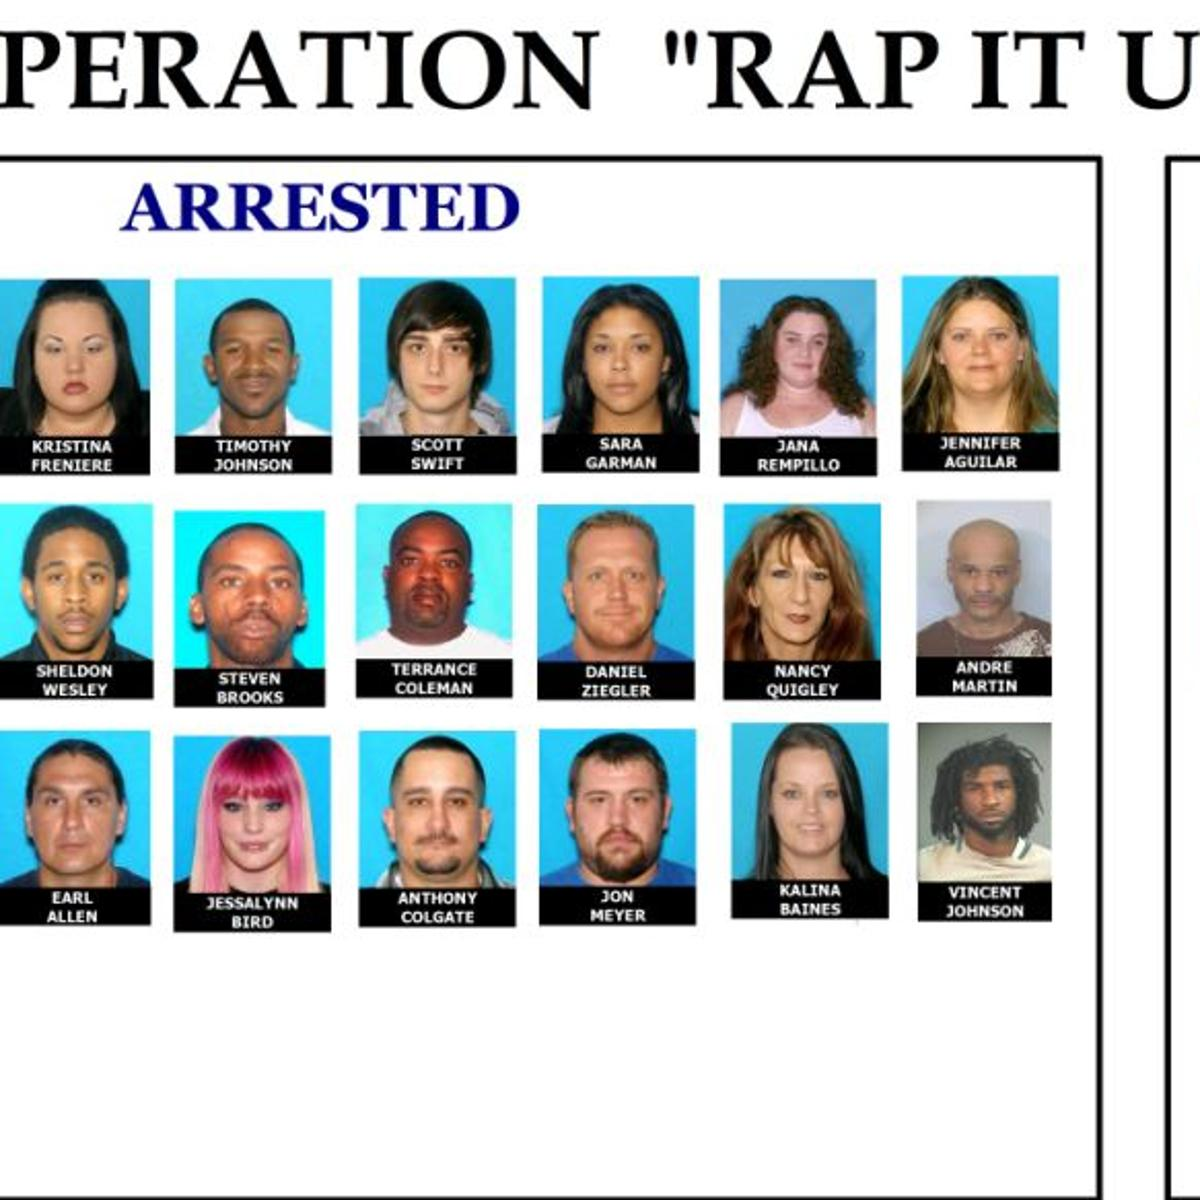 Dozens arrested in state and federal drug and firearms case